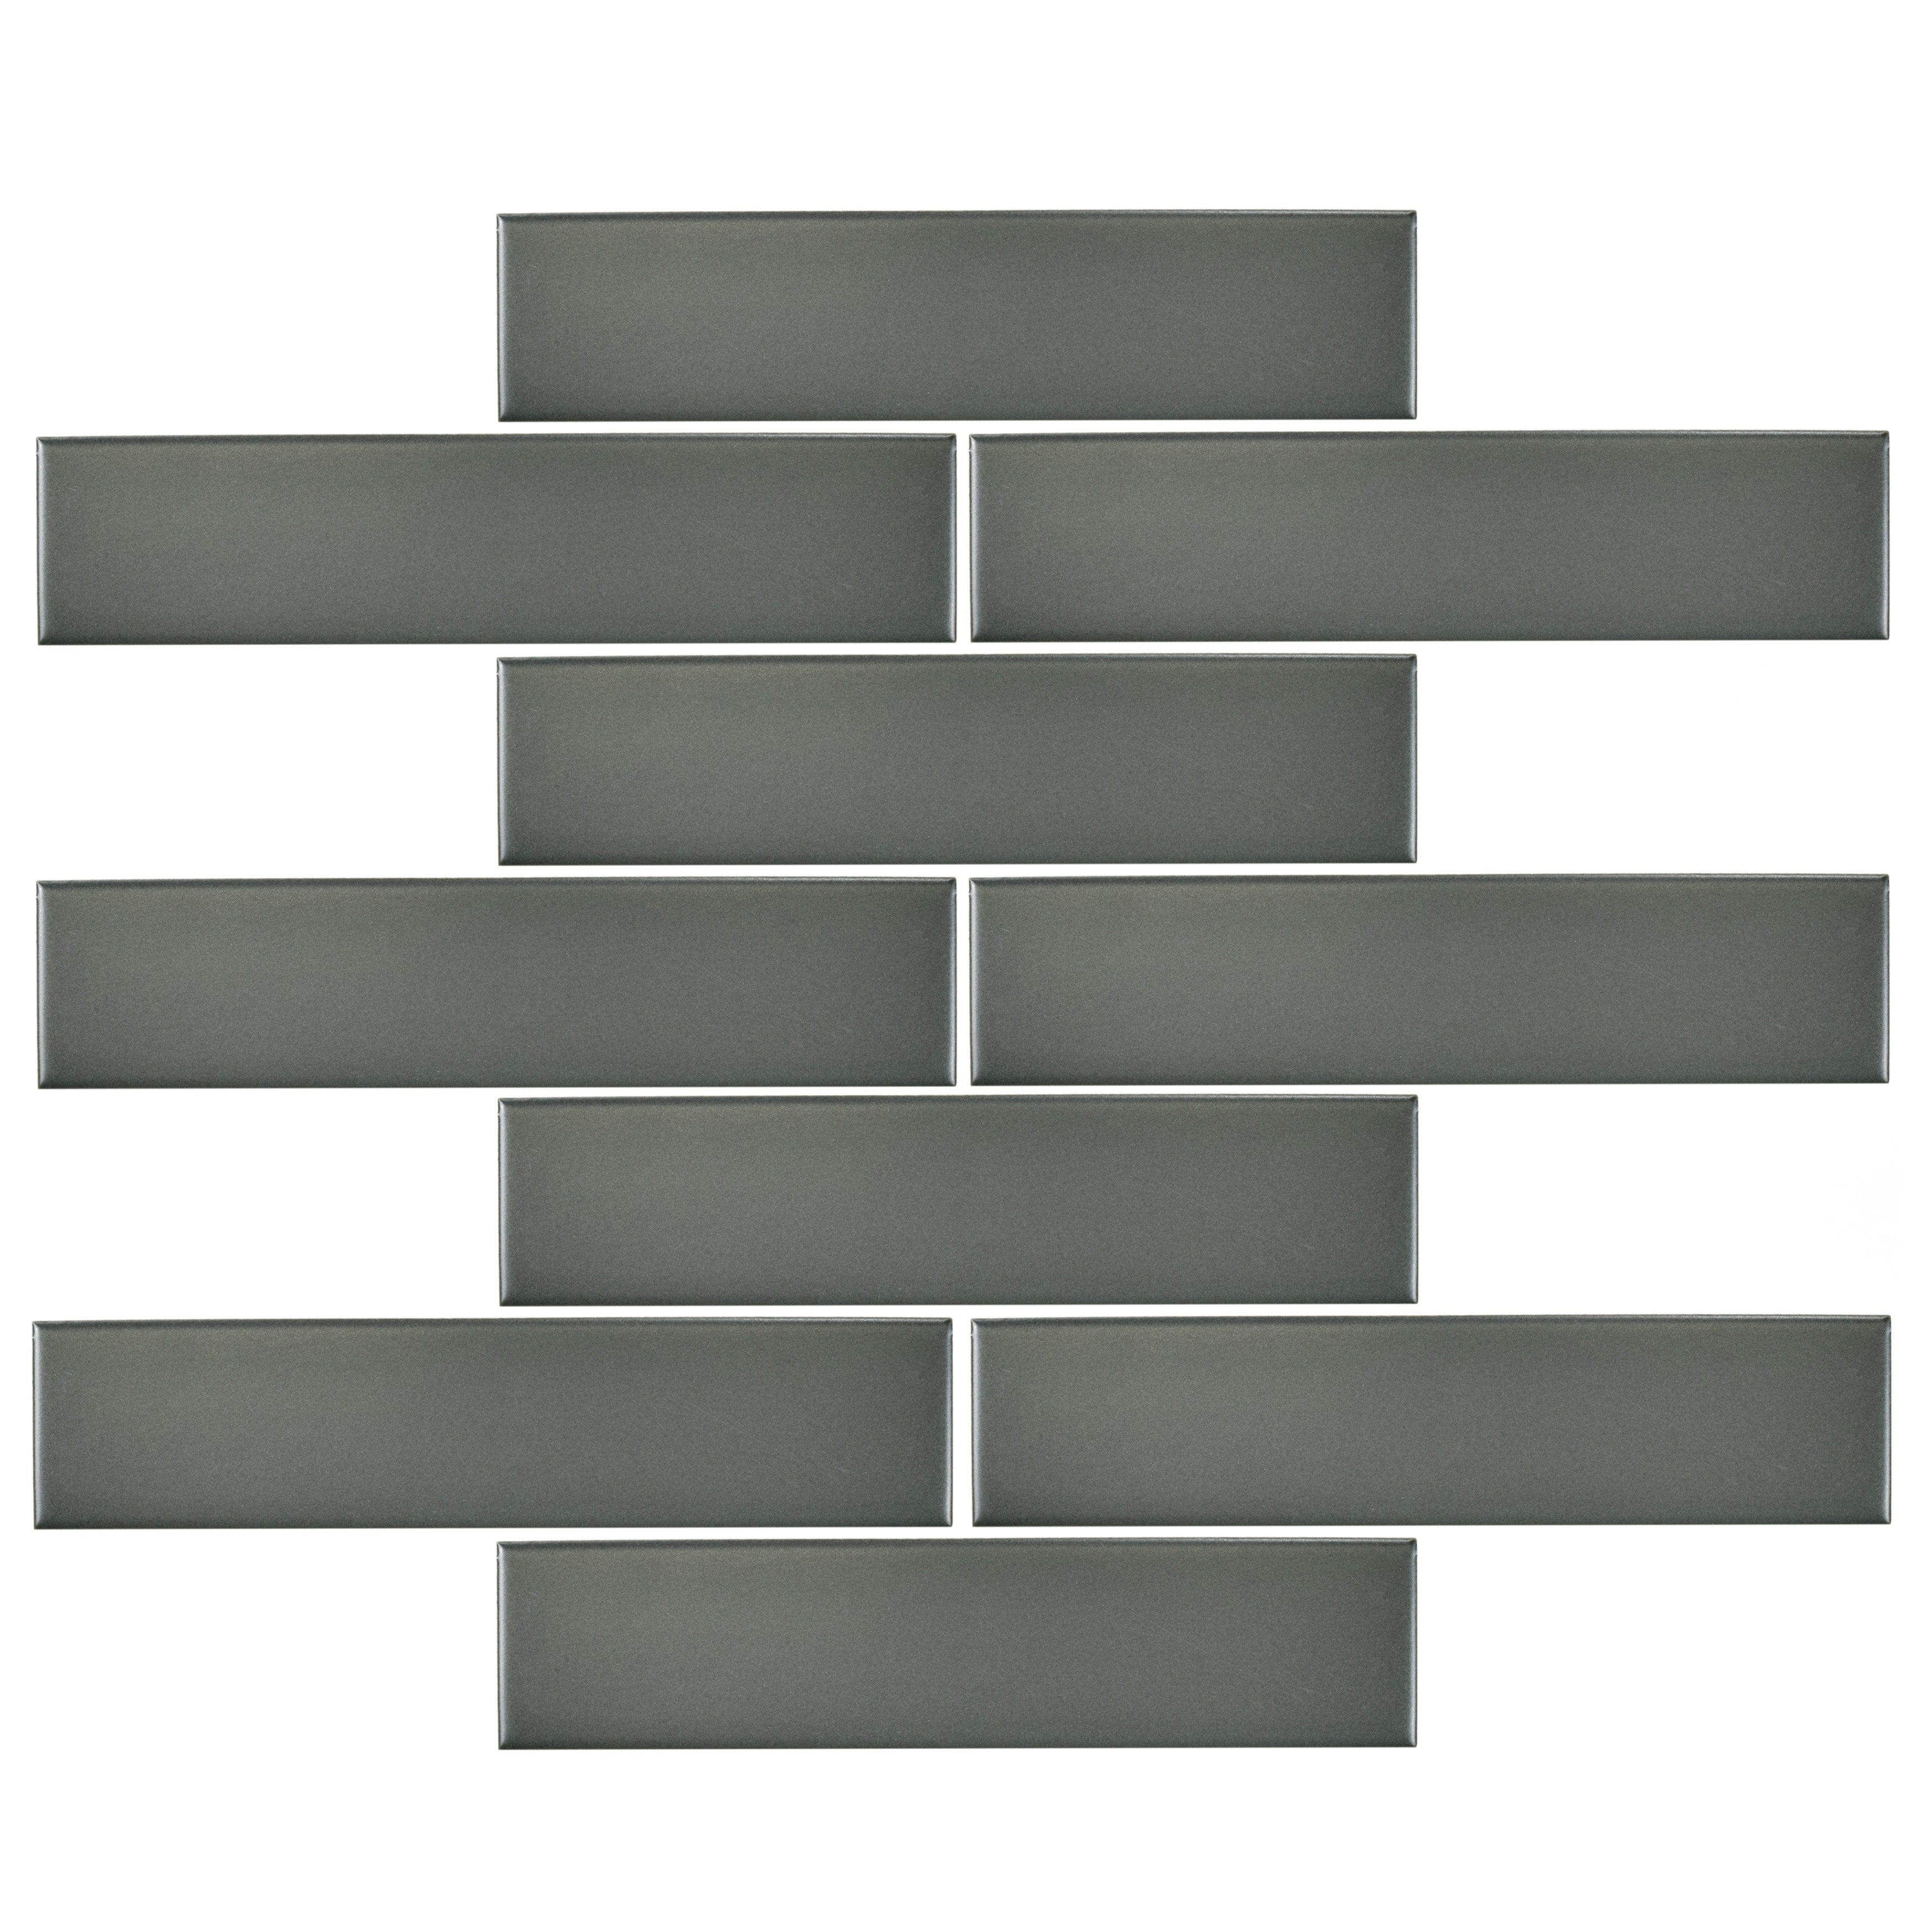 Somertile 175x775 inch victorian soho subway matte grey porcelain somertile 175x775 inch victorian soho subway matte grey porcelain floor and wall tile 10 tiles1 sqft free shipping on orders over 45 dailygadgetfo Choice Image